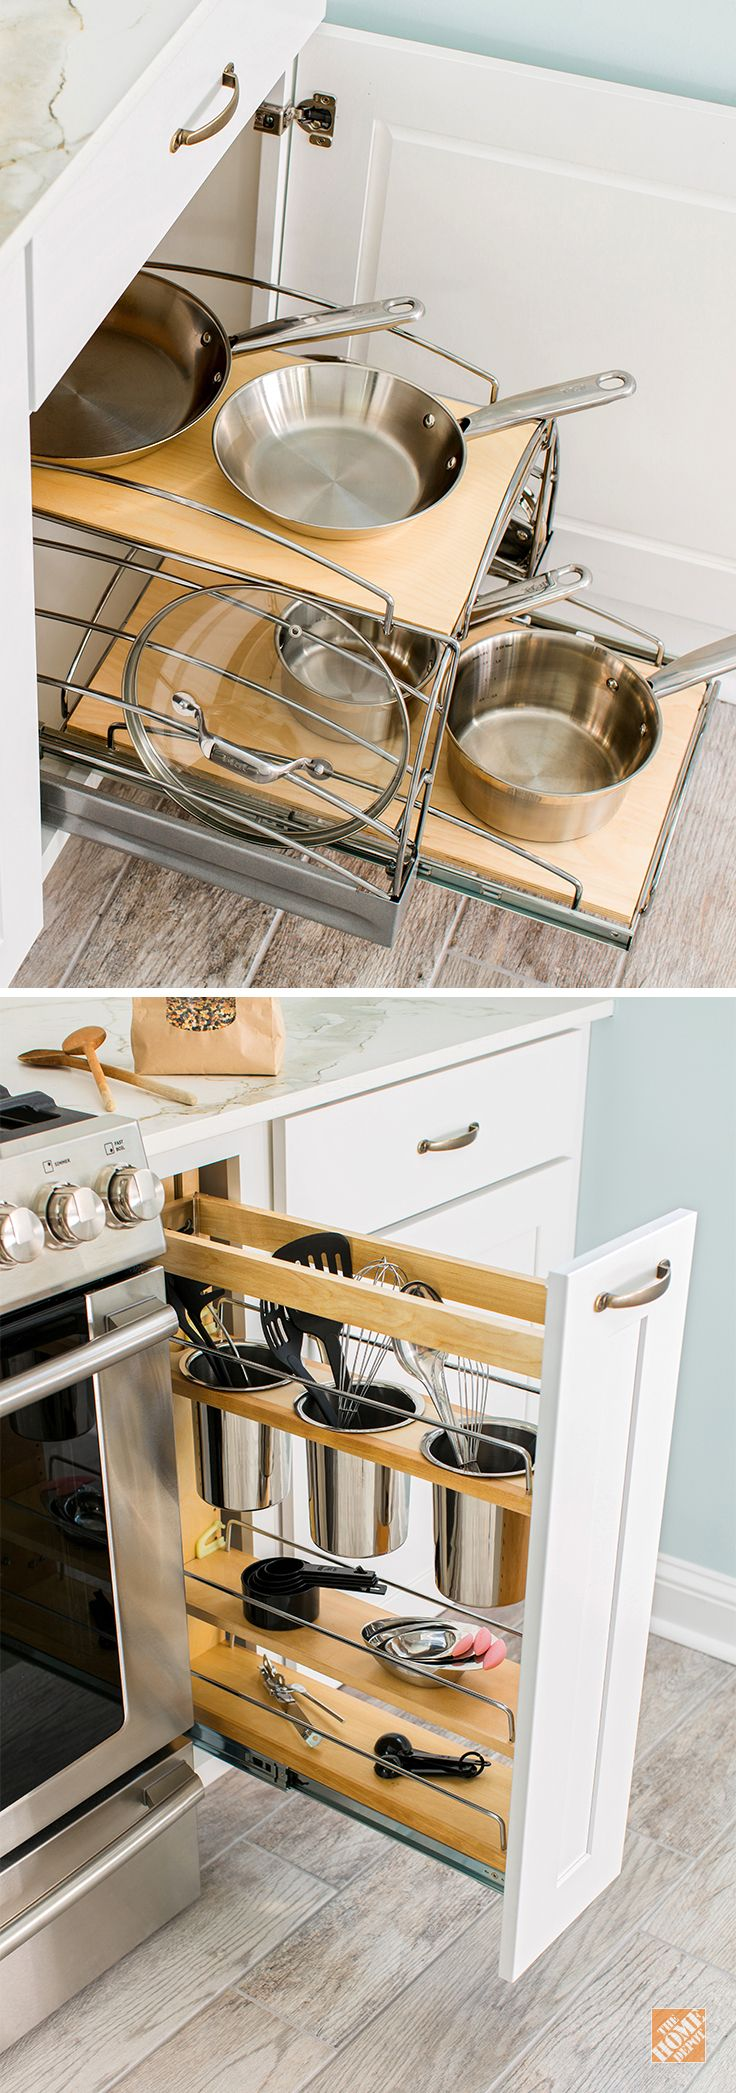 Storage Solutions for Your Kitchen Makeover  Need Kitchen Decorating Ideas? Go to Centophobe.com | #Kitchen #kitchen decorating ideas